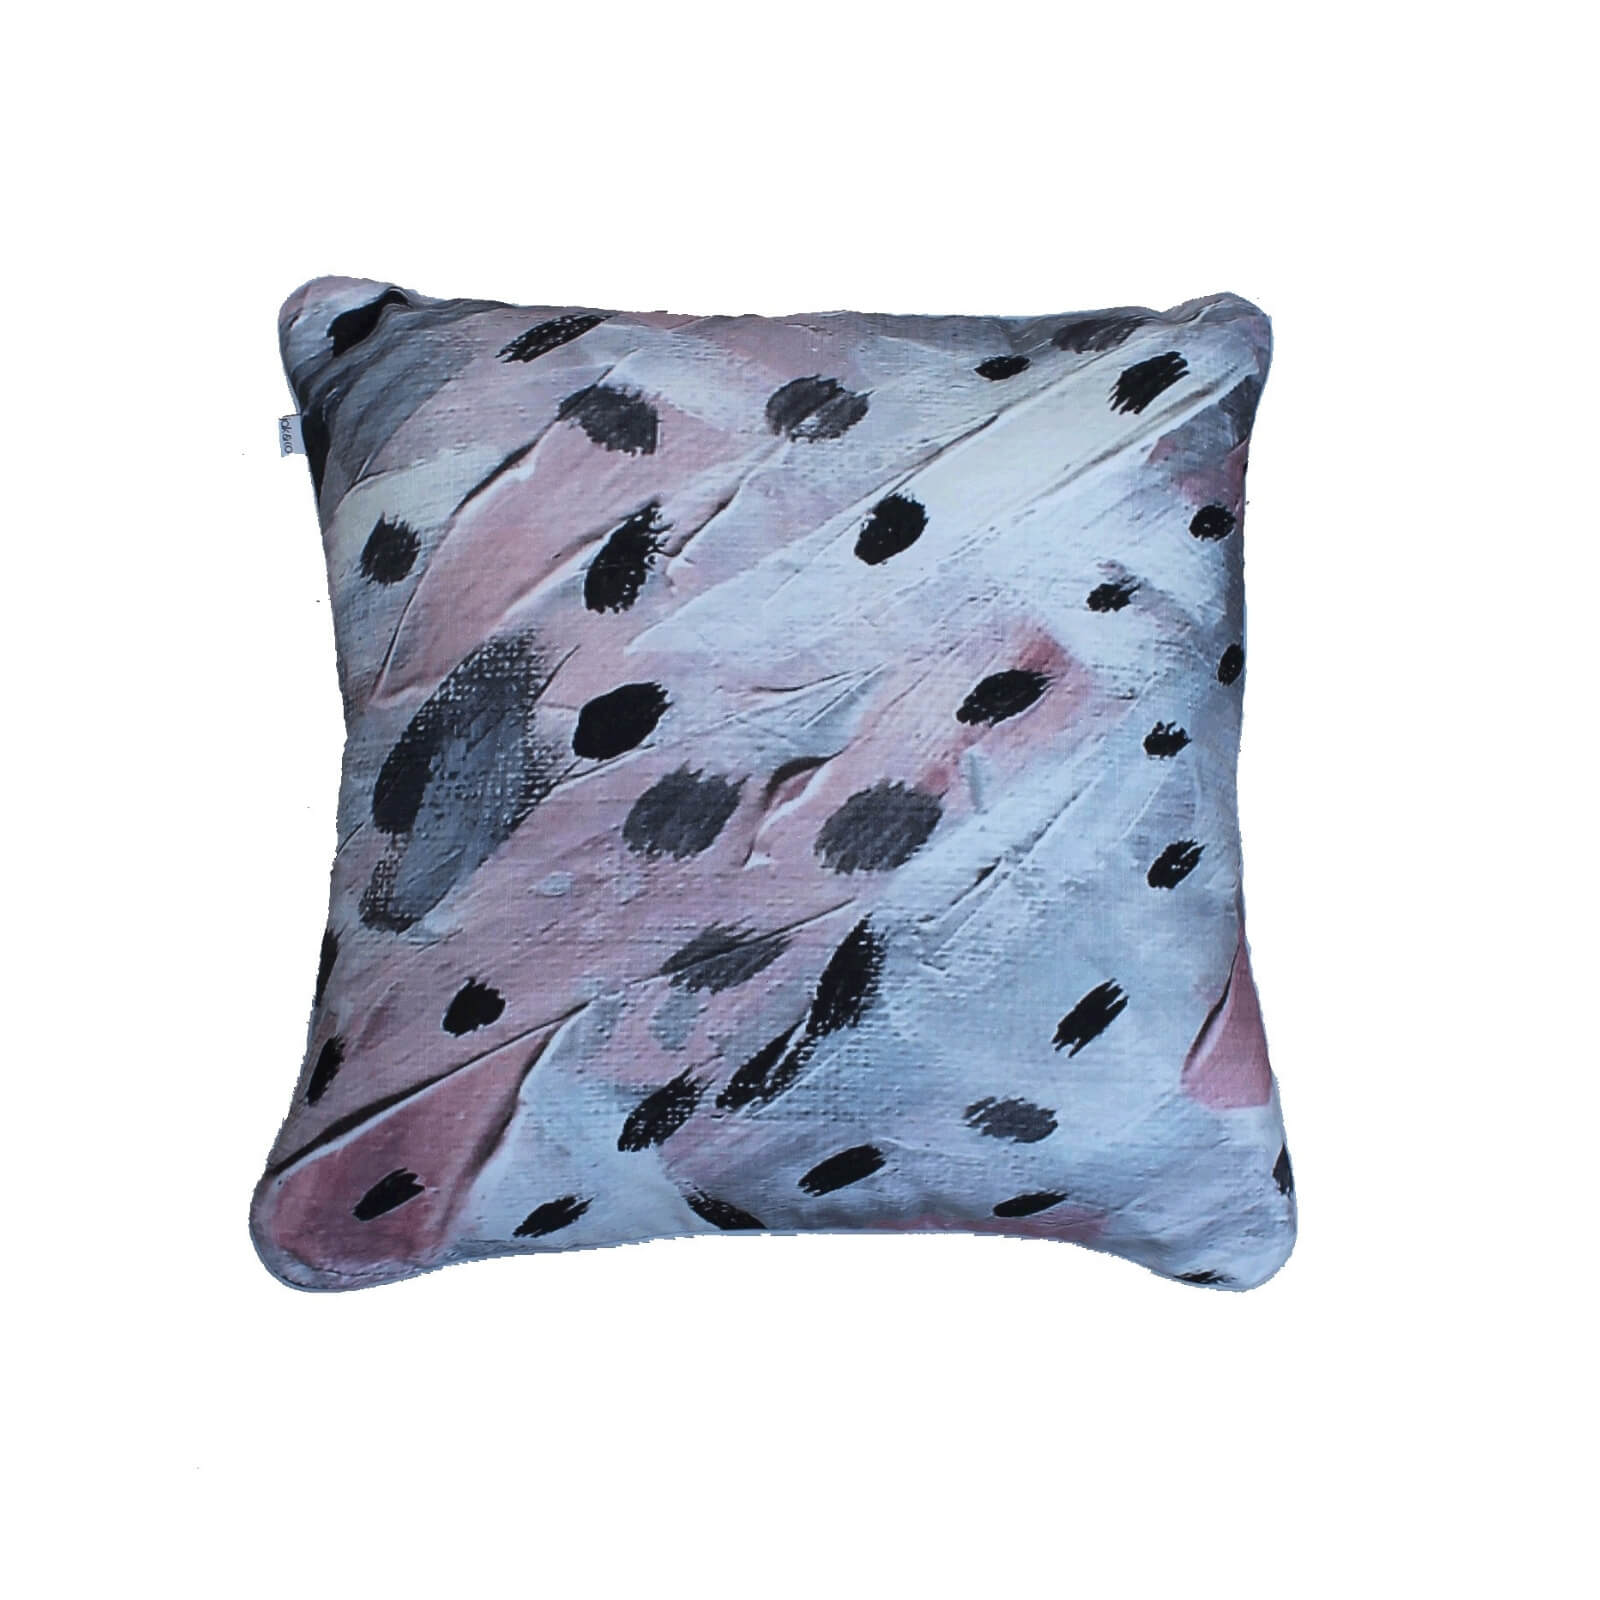 Two Design Lovers Jak & Co Flintstone cushion